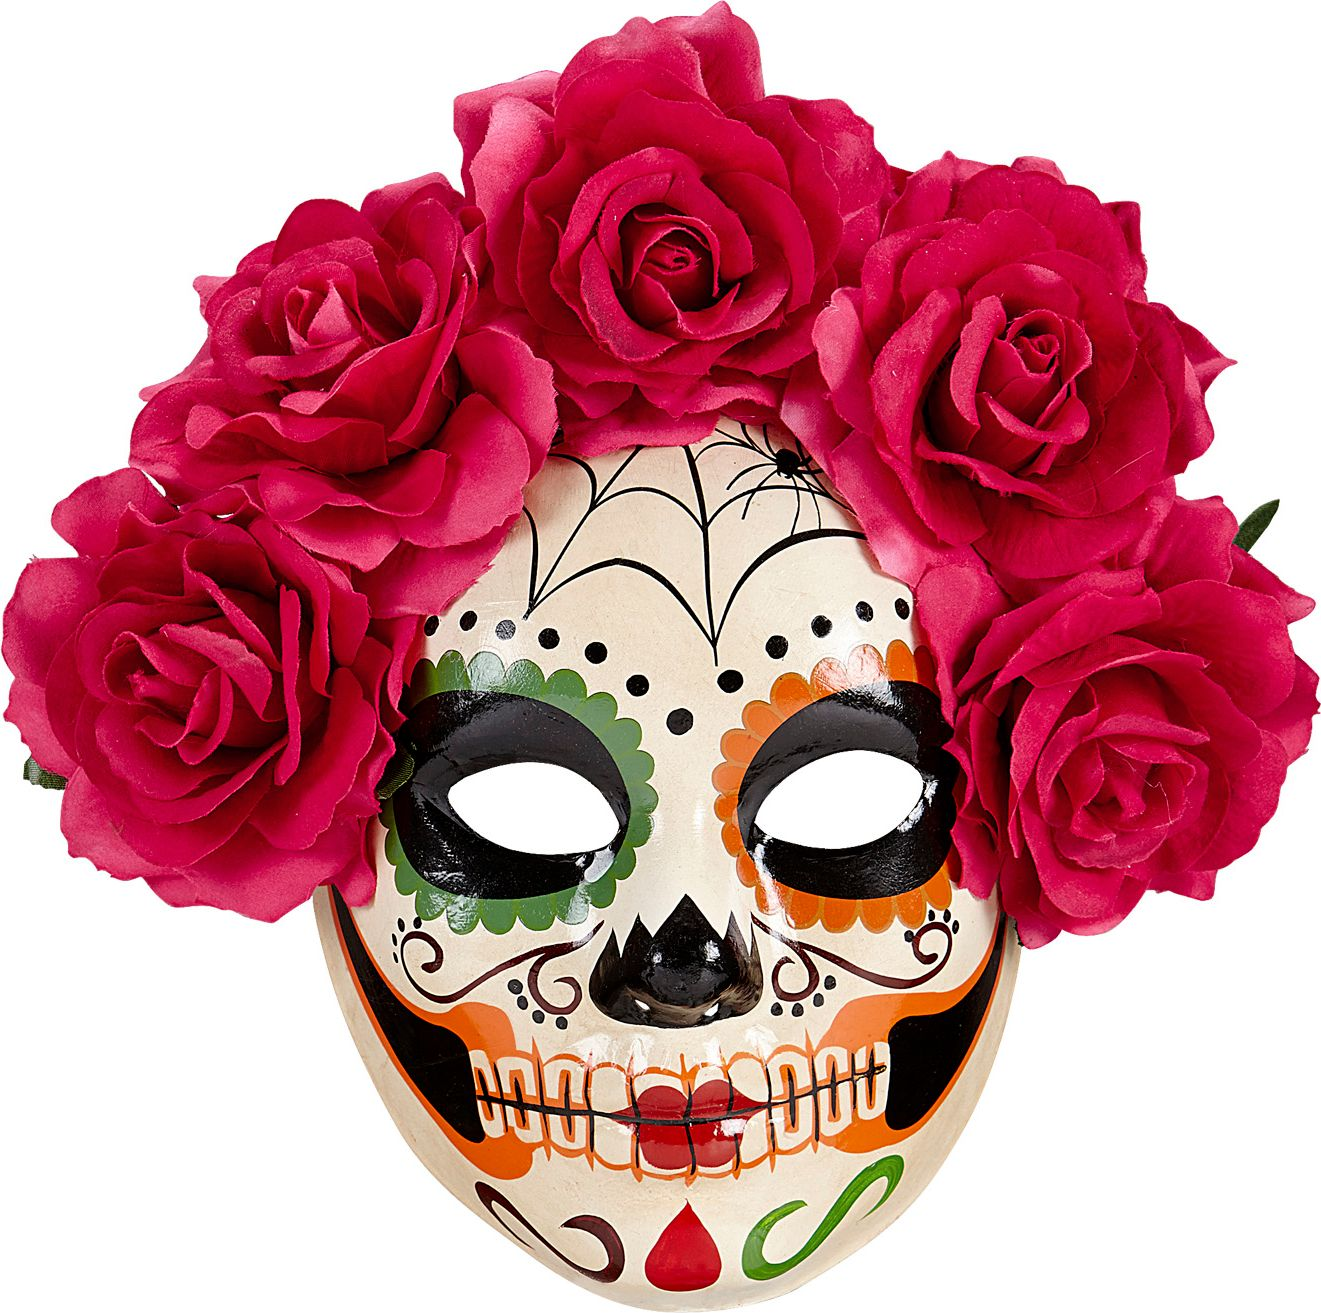 Day of the dead masker met rode rozen